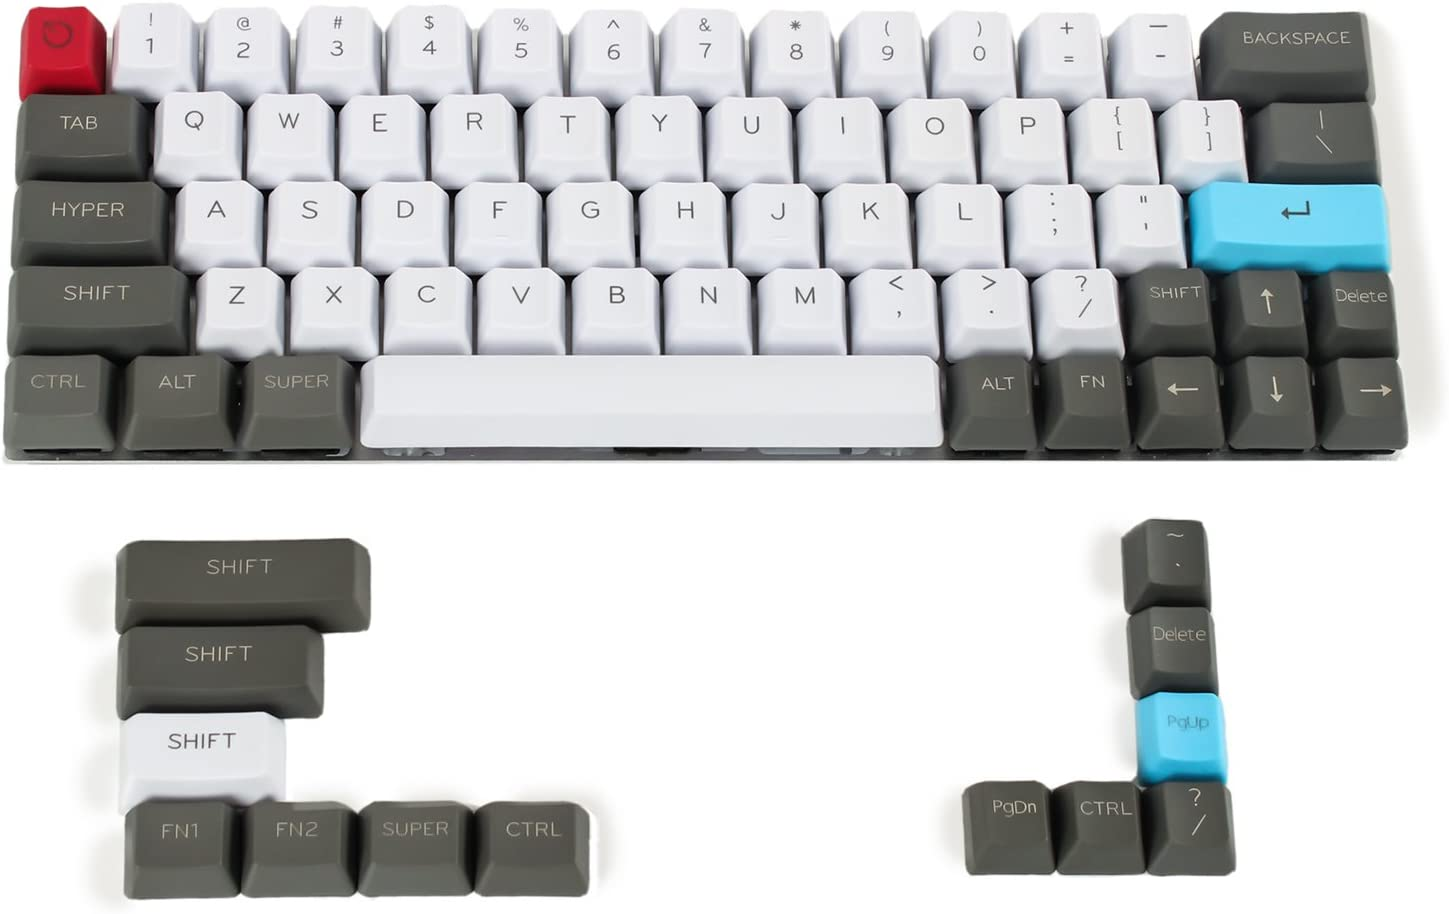 YMDK Customized 61 64 68 ANSI Keyset OEM Profile Thick PBT Keycap Set for Cherry MX Mechanical Keyboard GH60 XD64 GK64 Tada68 (Only Keycap)